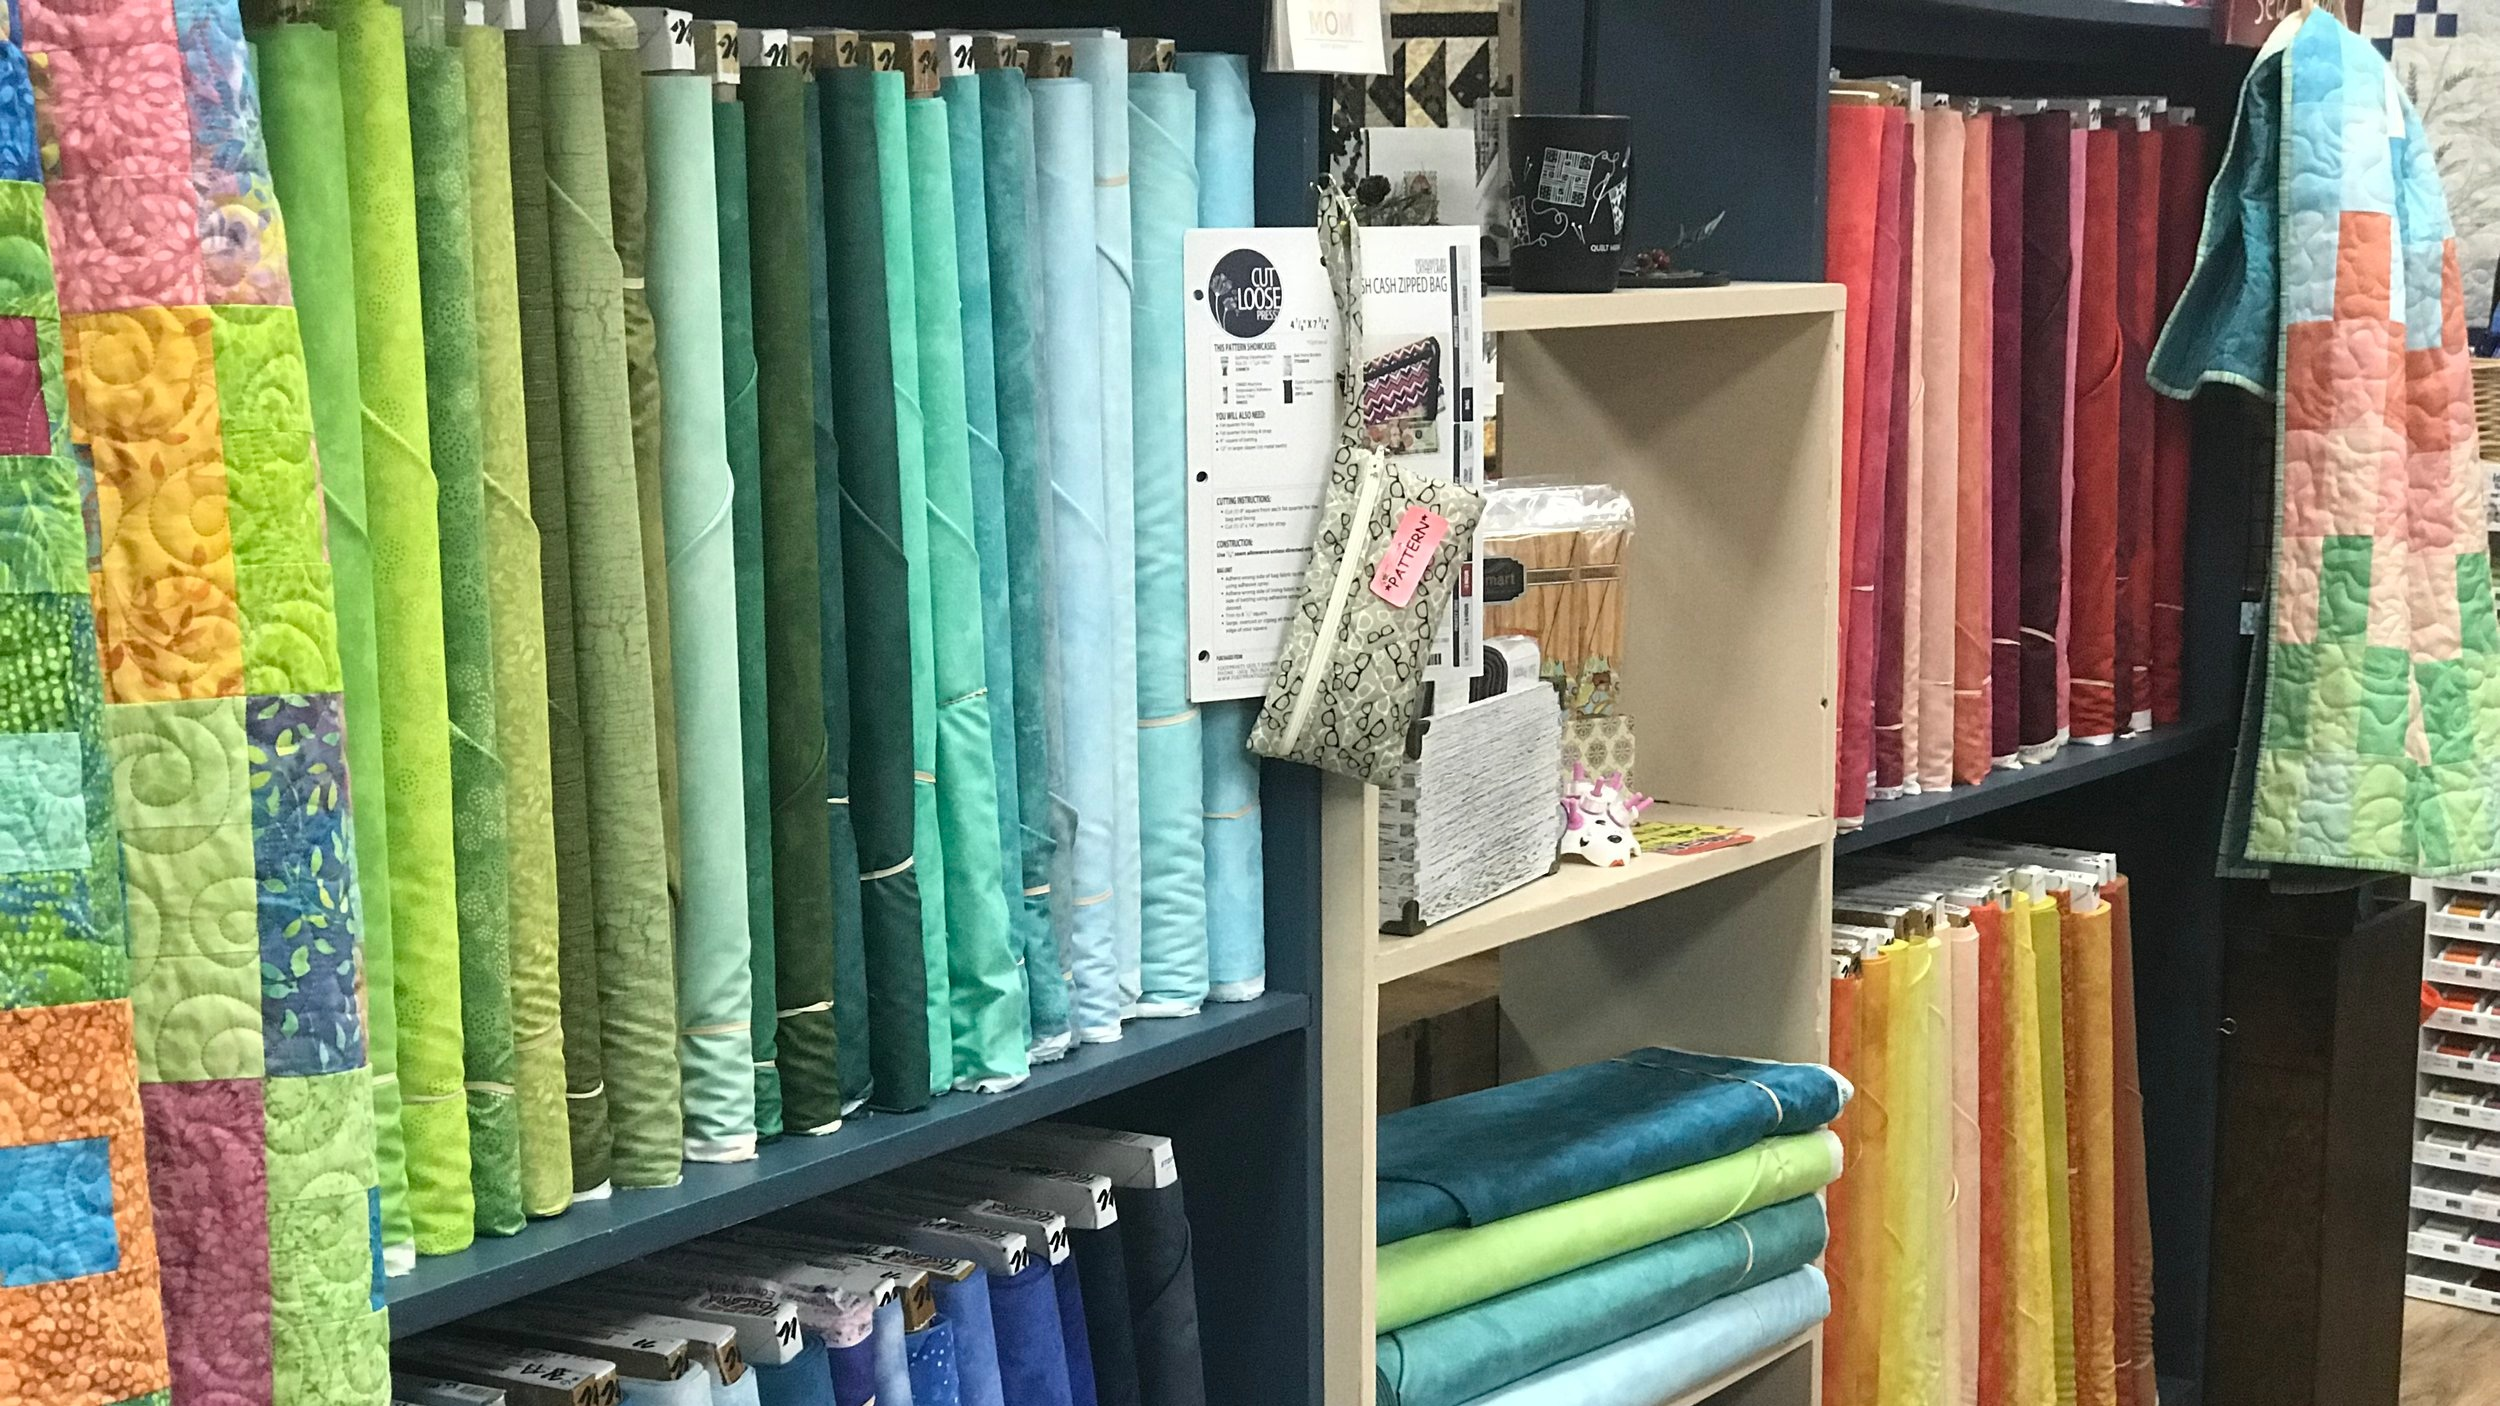 Seamless Spaces - shop or learn: our SPACE is for makers of all skill levels. Beginners and advanced quilters alike can grow + immerse themselves in our quilting and general sewing classes.